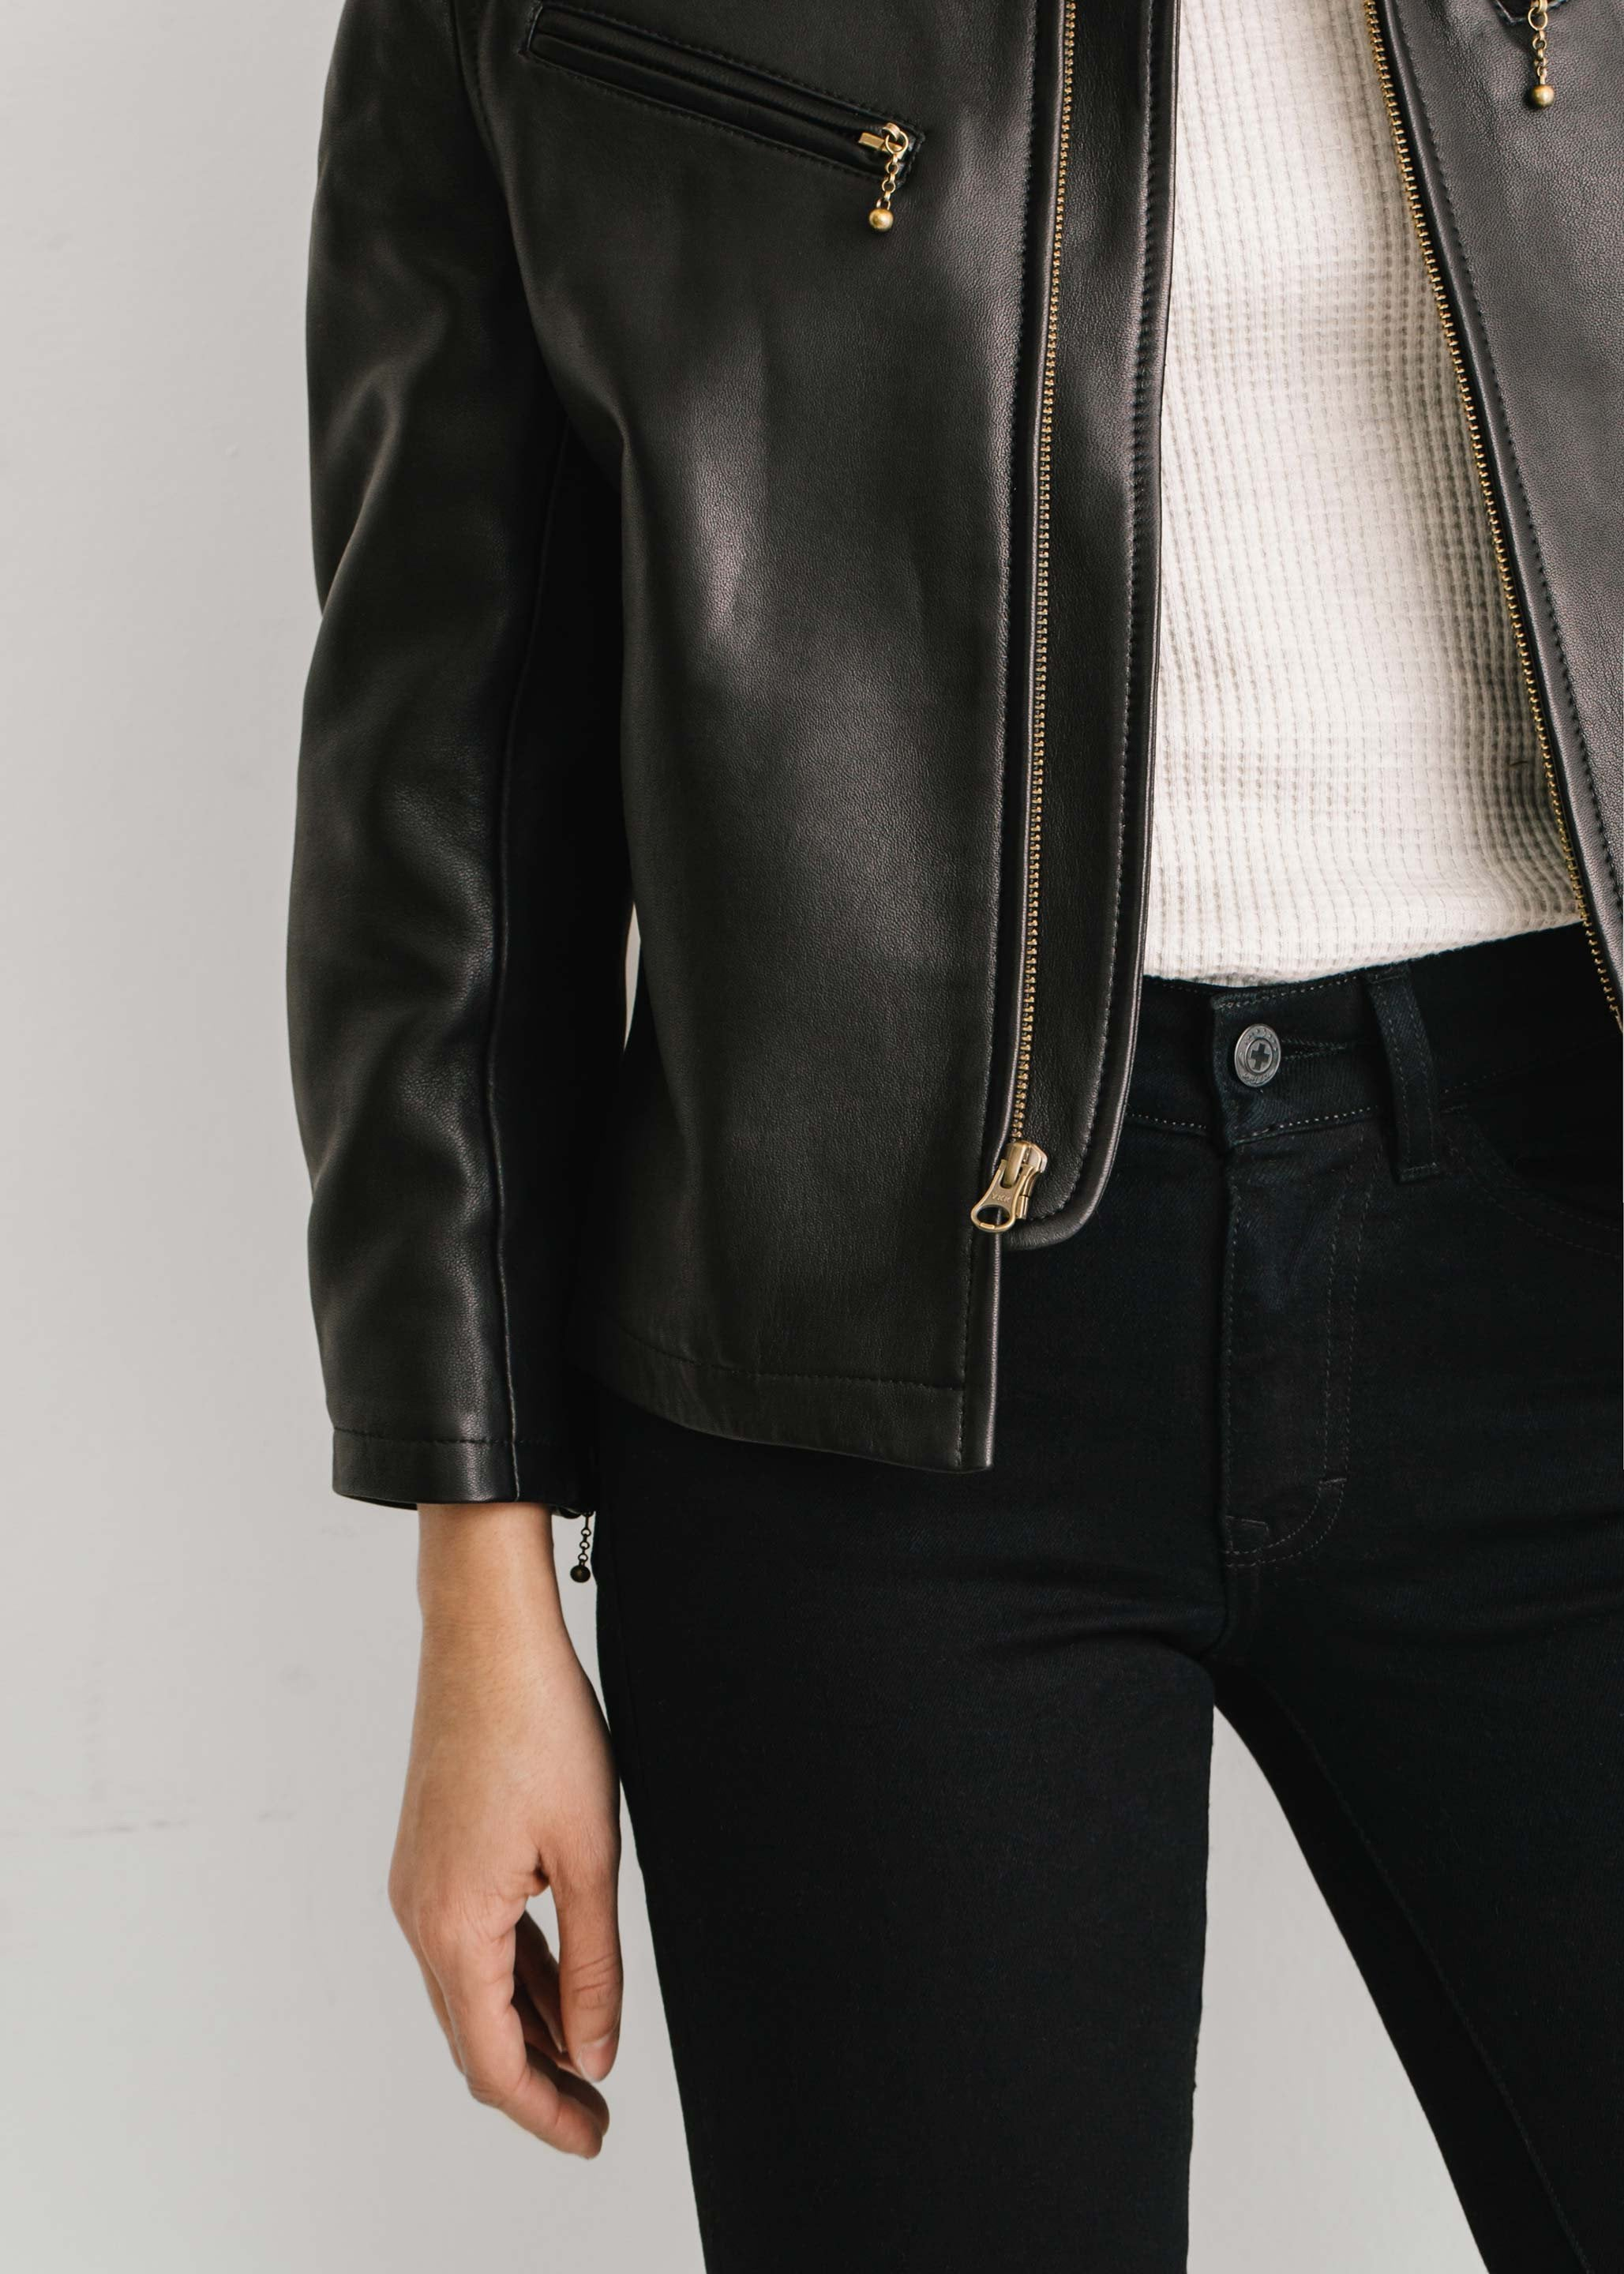 imogene + willie - the cass leather jacket